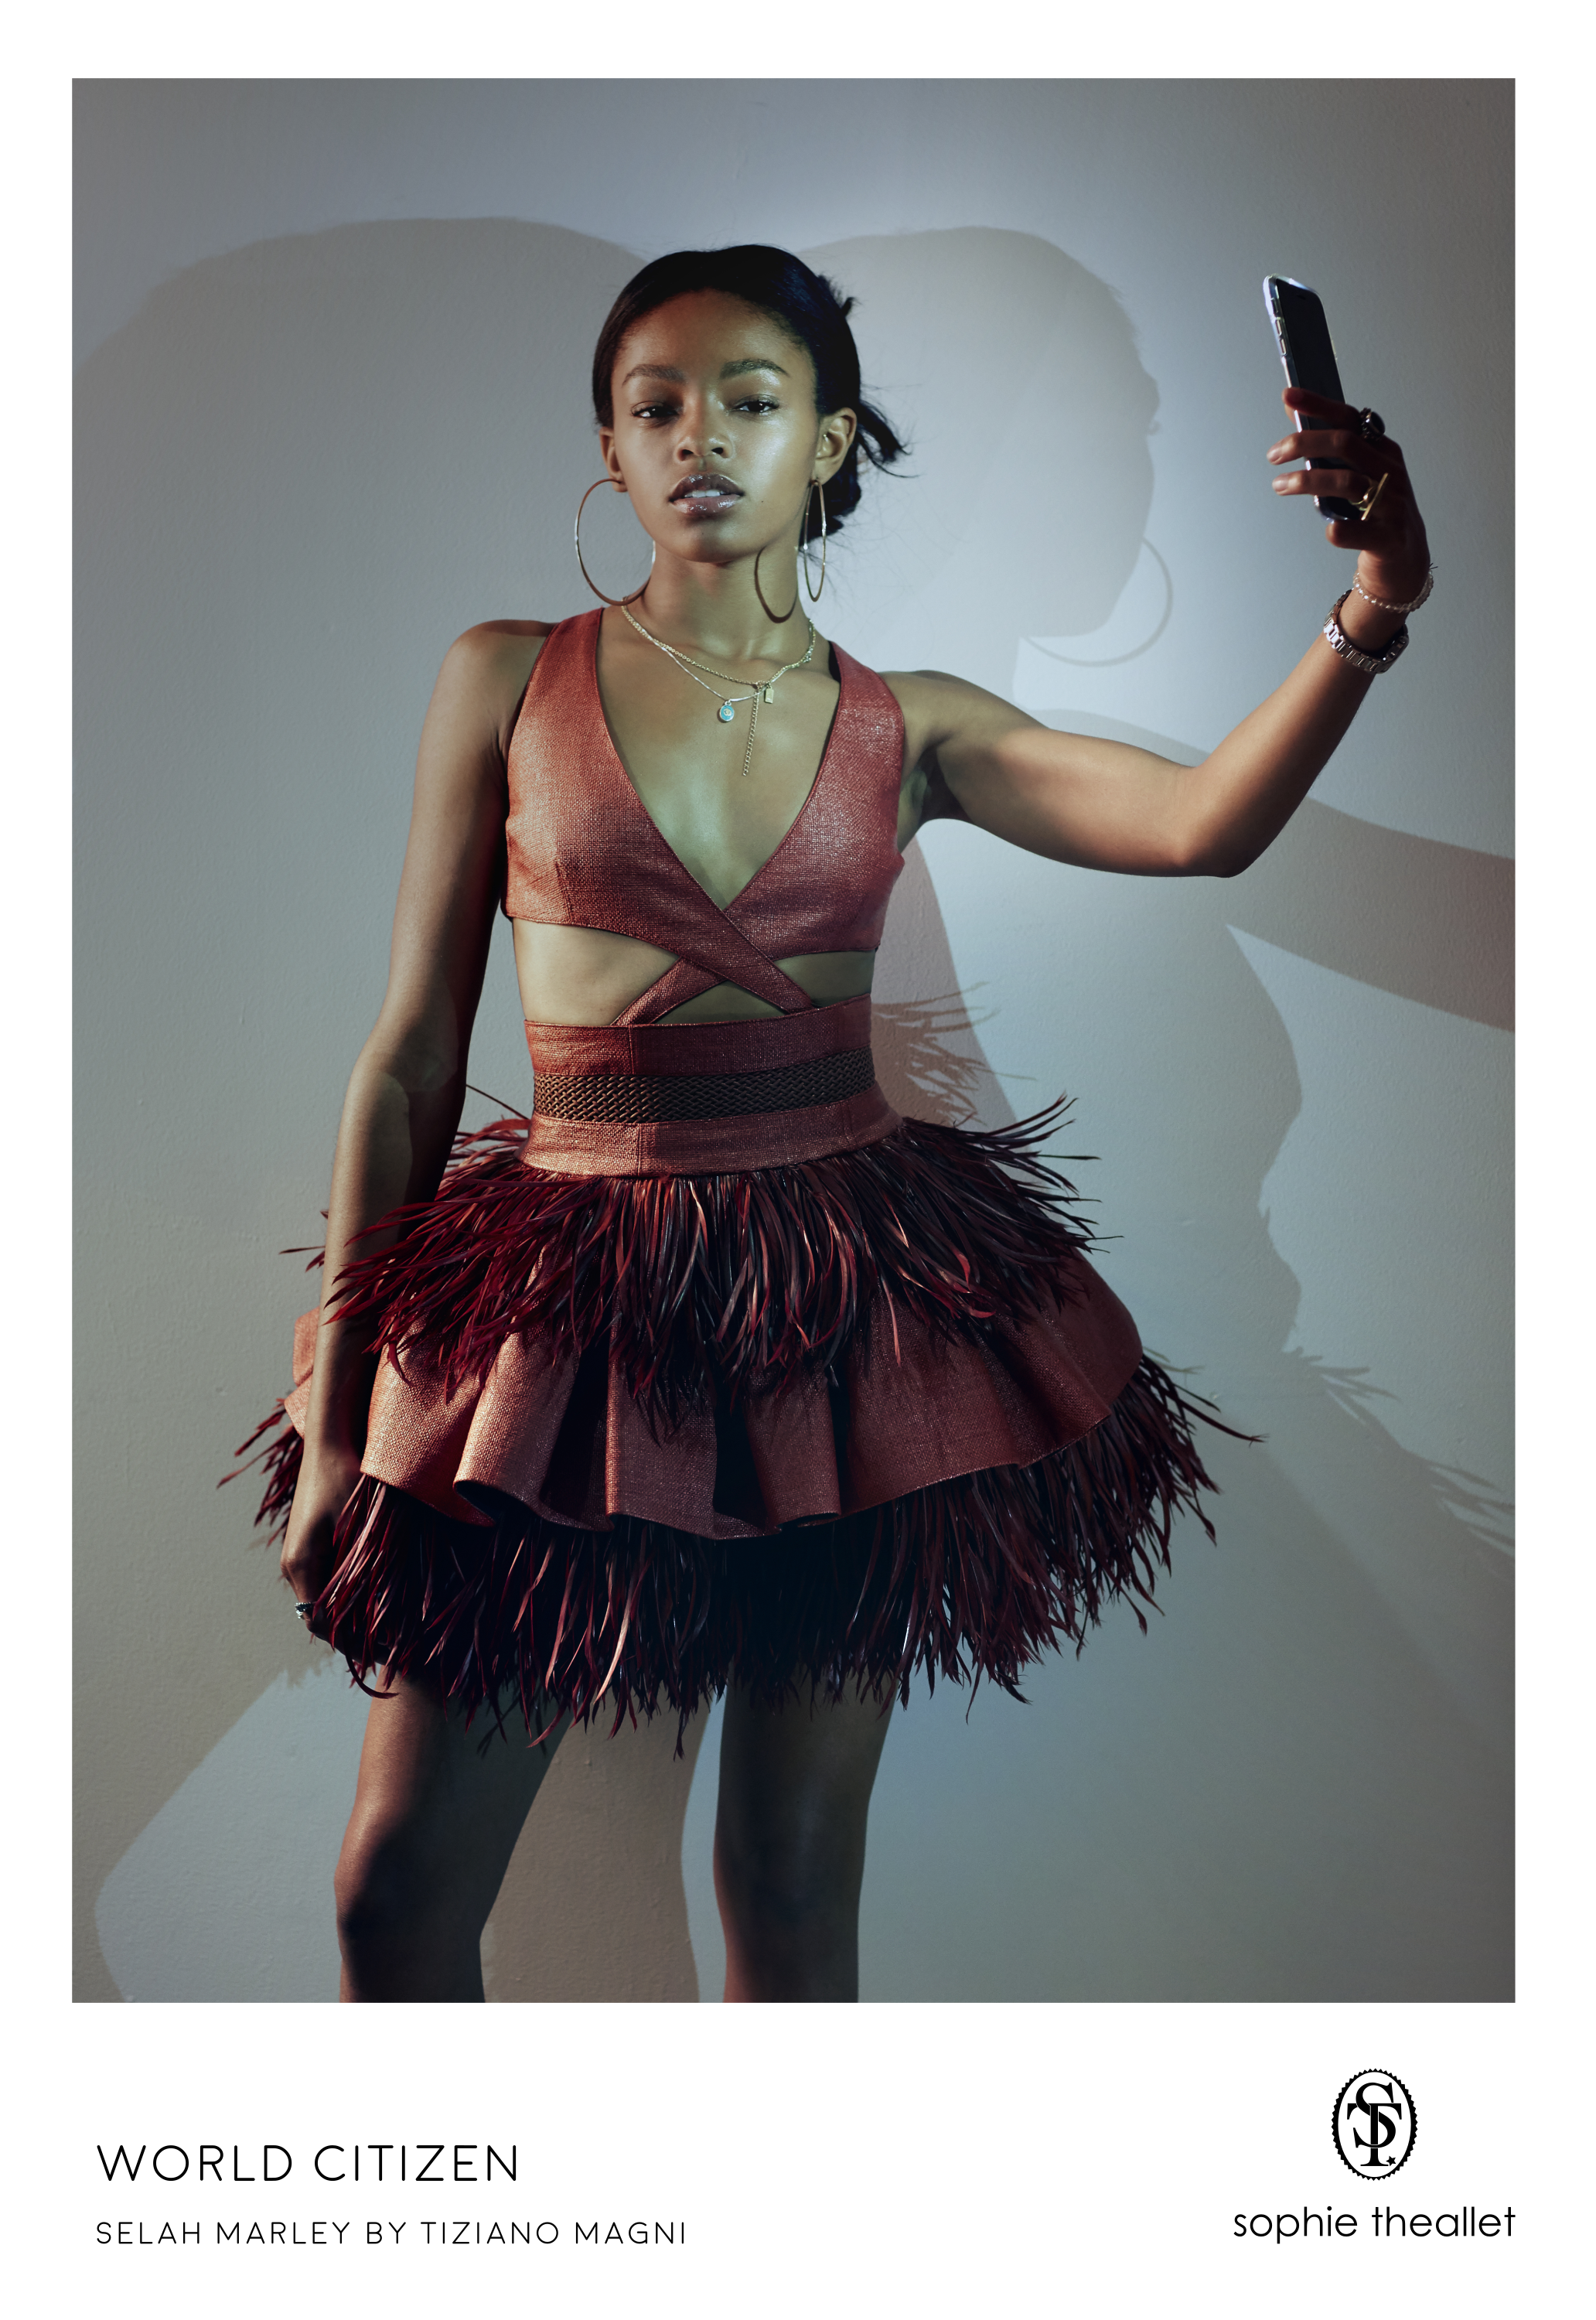 SS17 Campaign Serie 1. Selah Marley.png